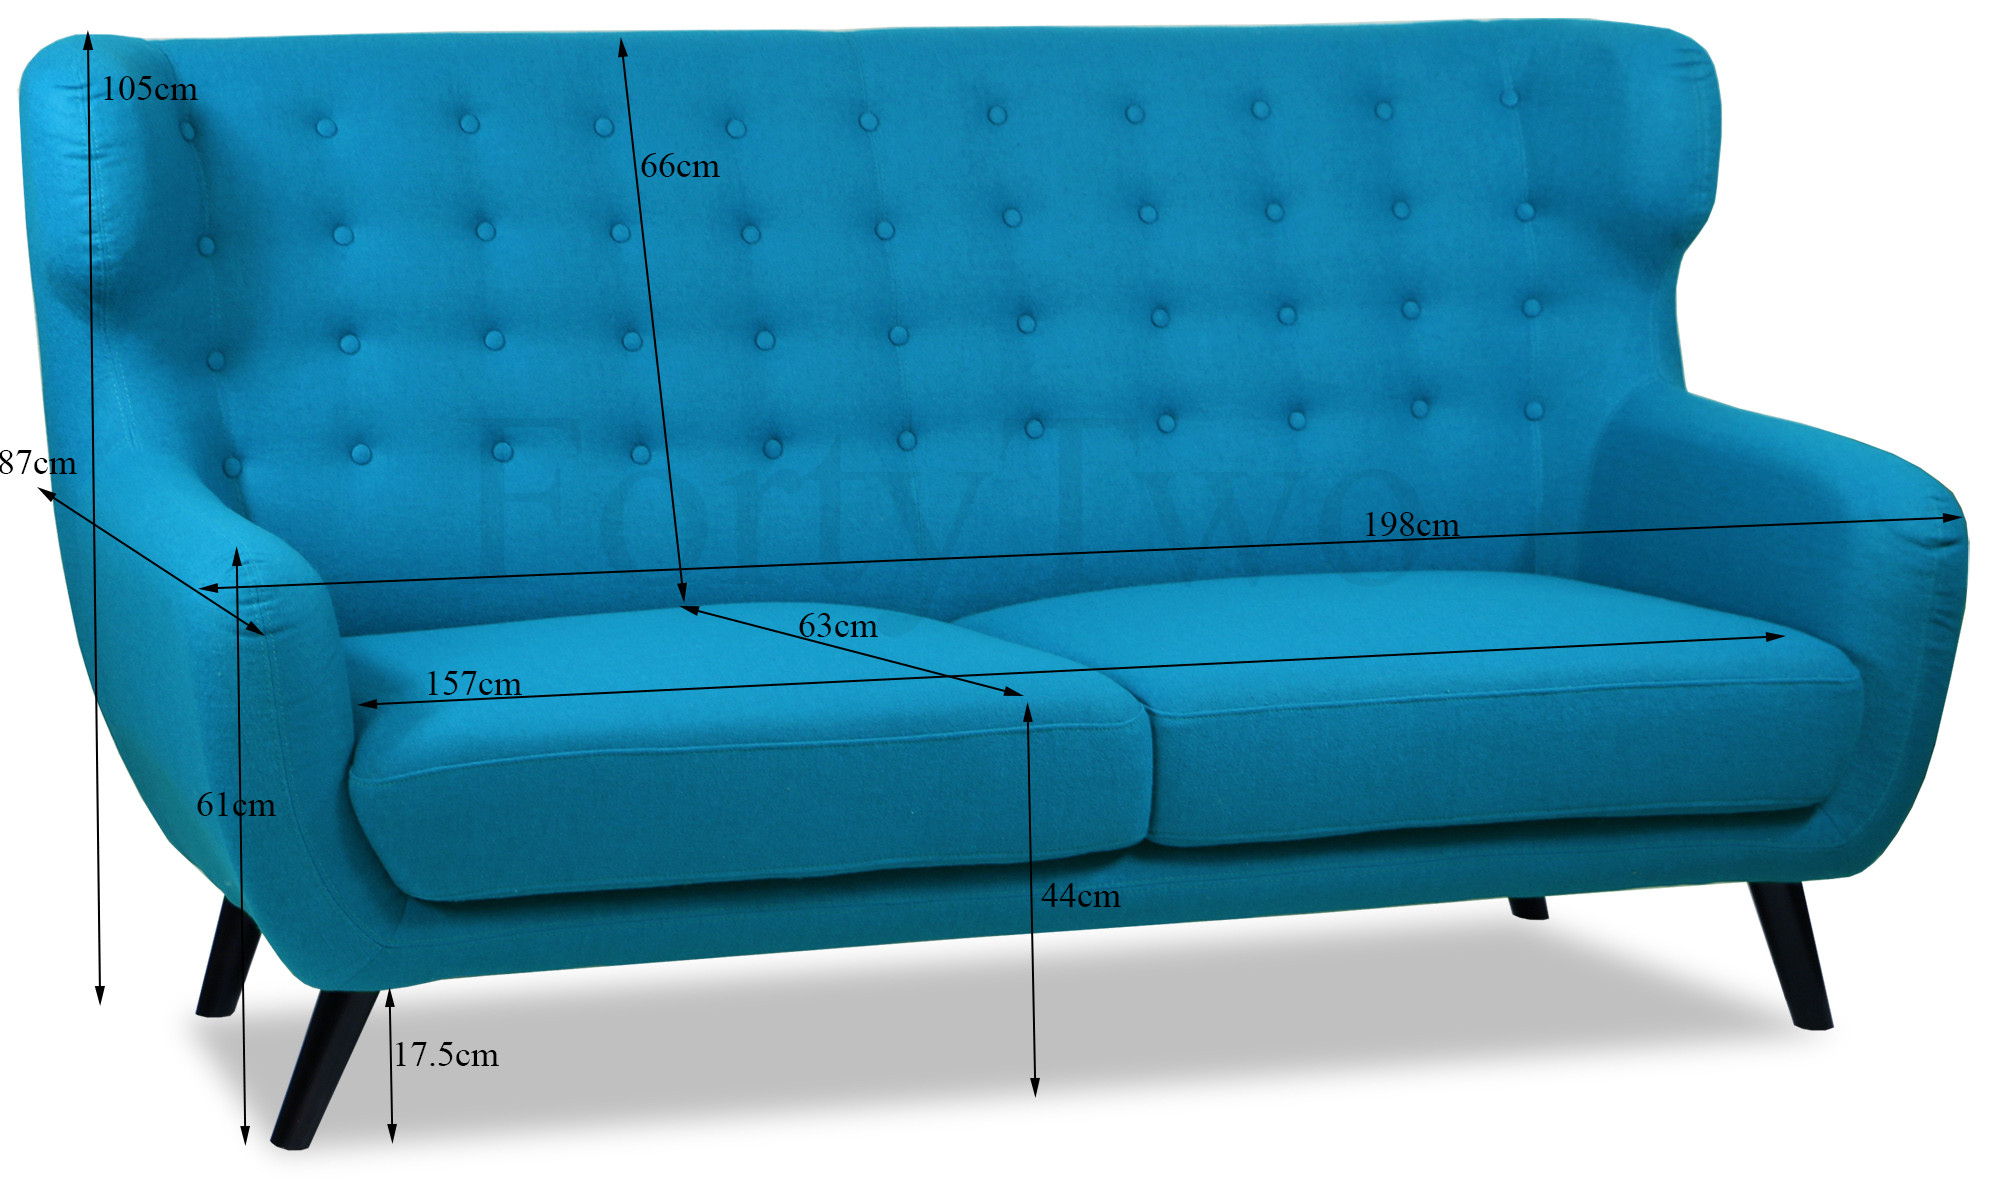 Replica wingback designer 3 seater sofa in aqua trending for Designer sofa replica